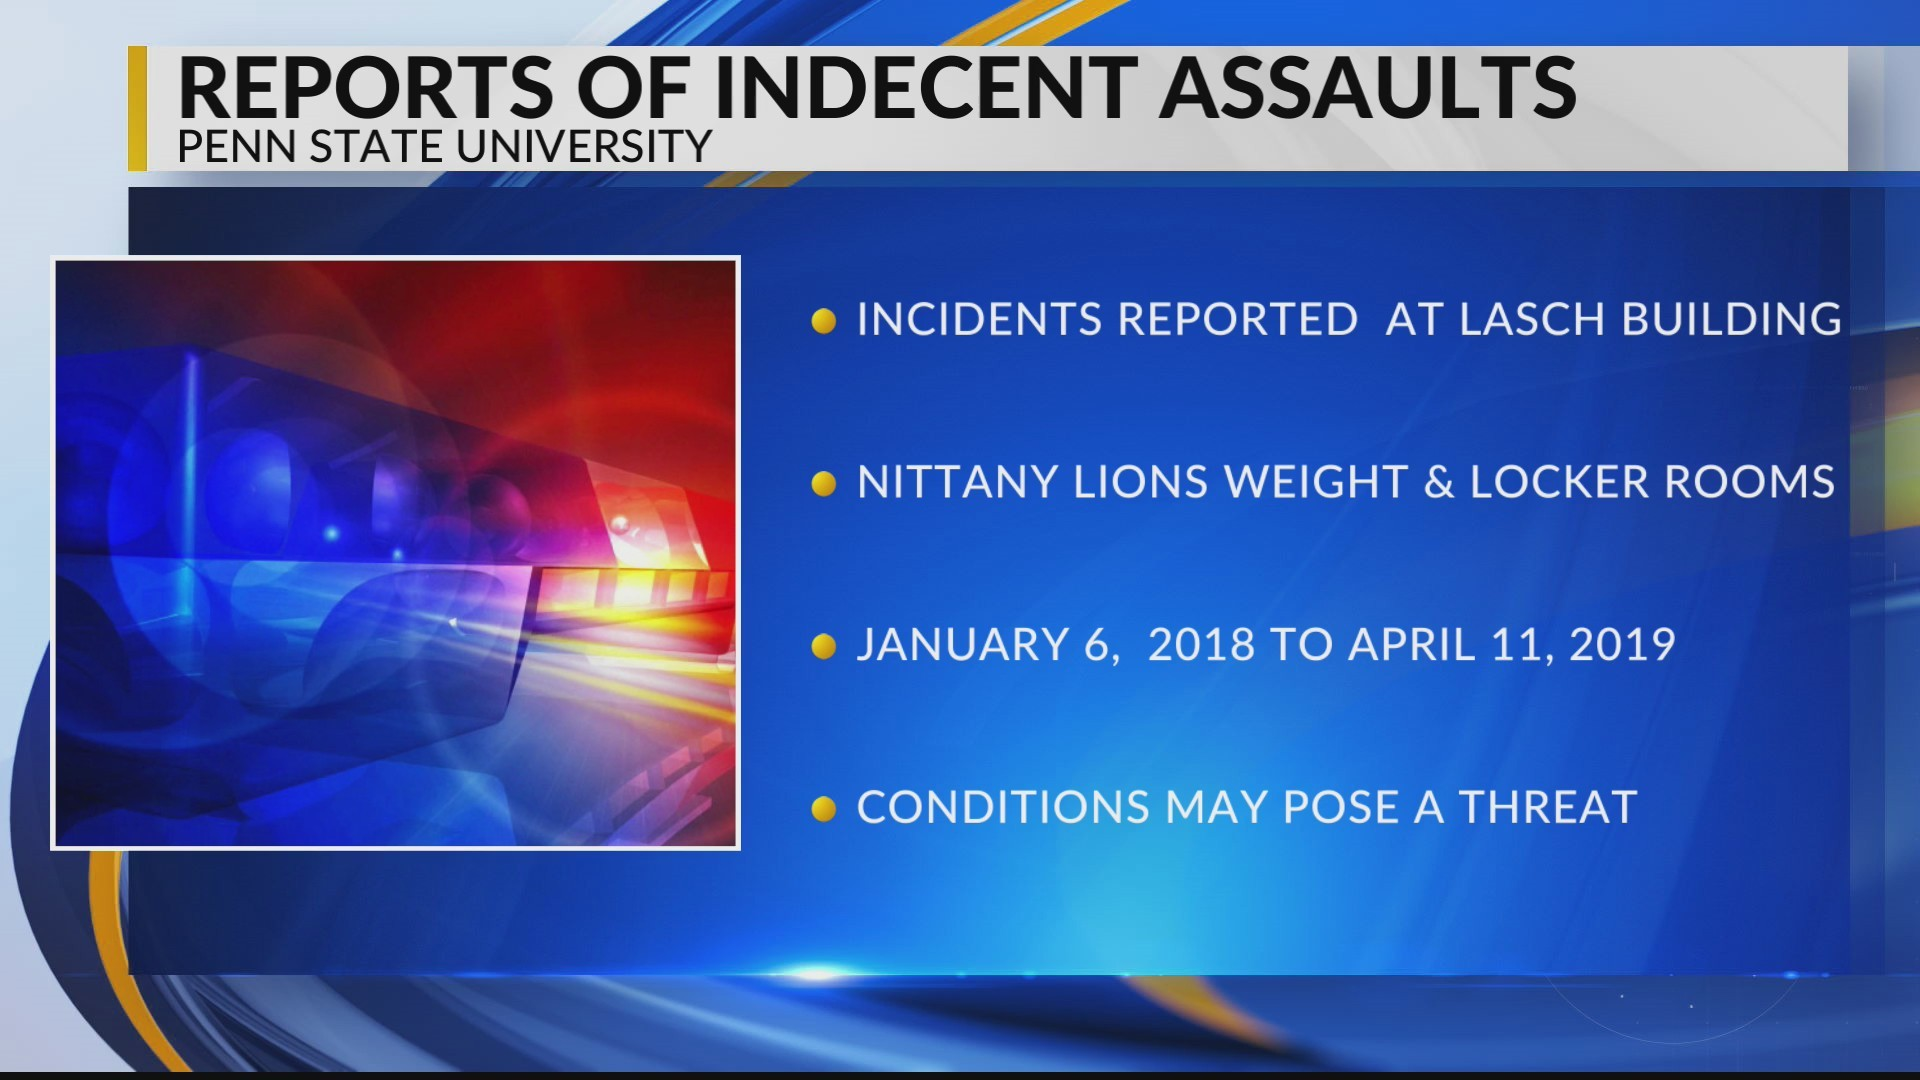 Reports_of_indecent_assaults_at_Penn_Sta_0_20190412164606